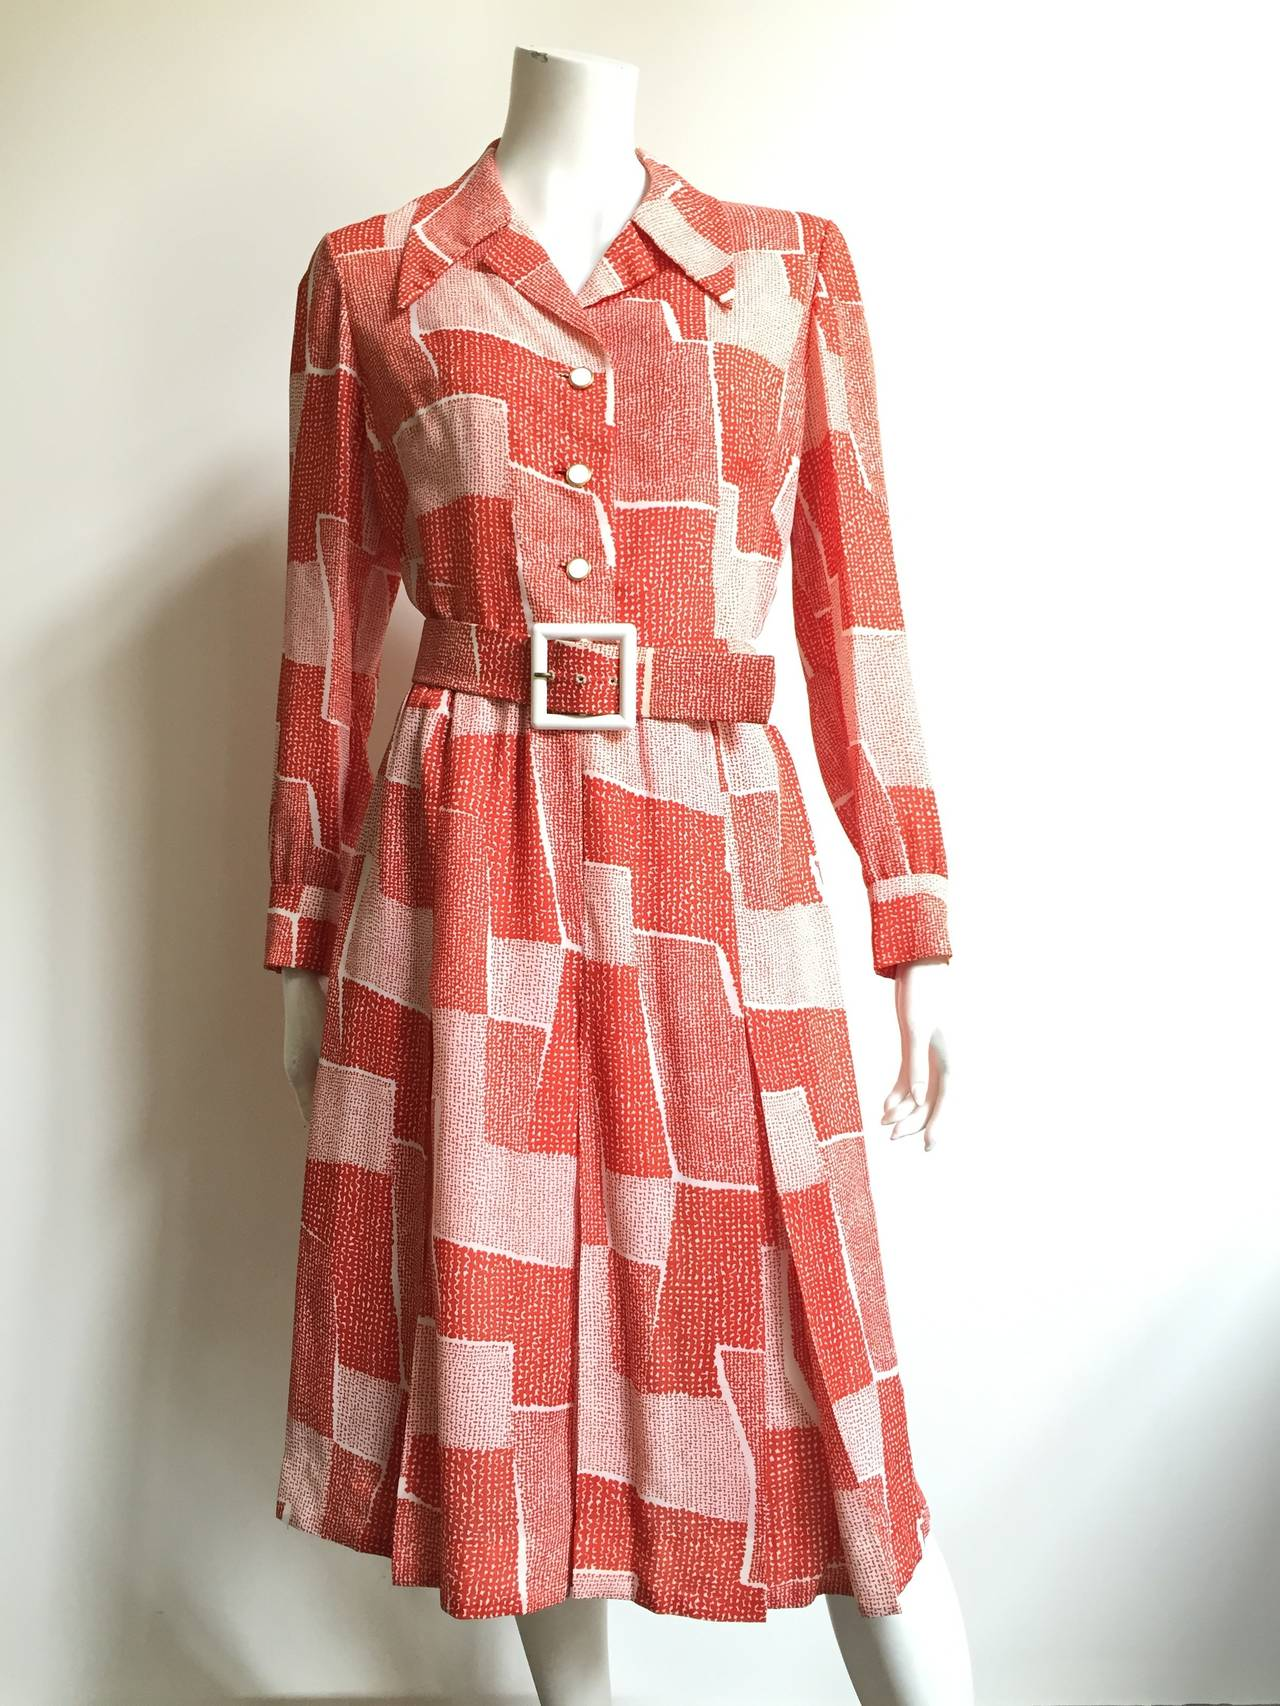 Adele Simpson 70s Dress Size 8. For Sale 5